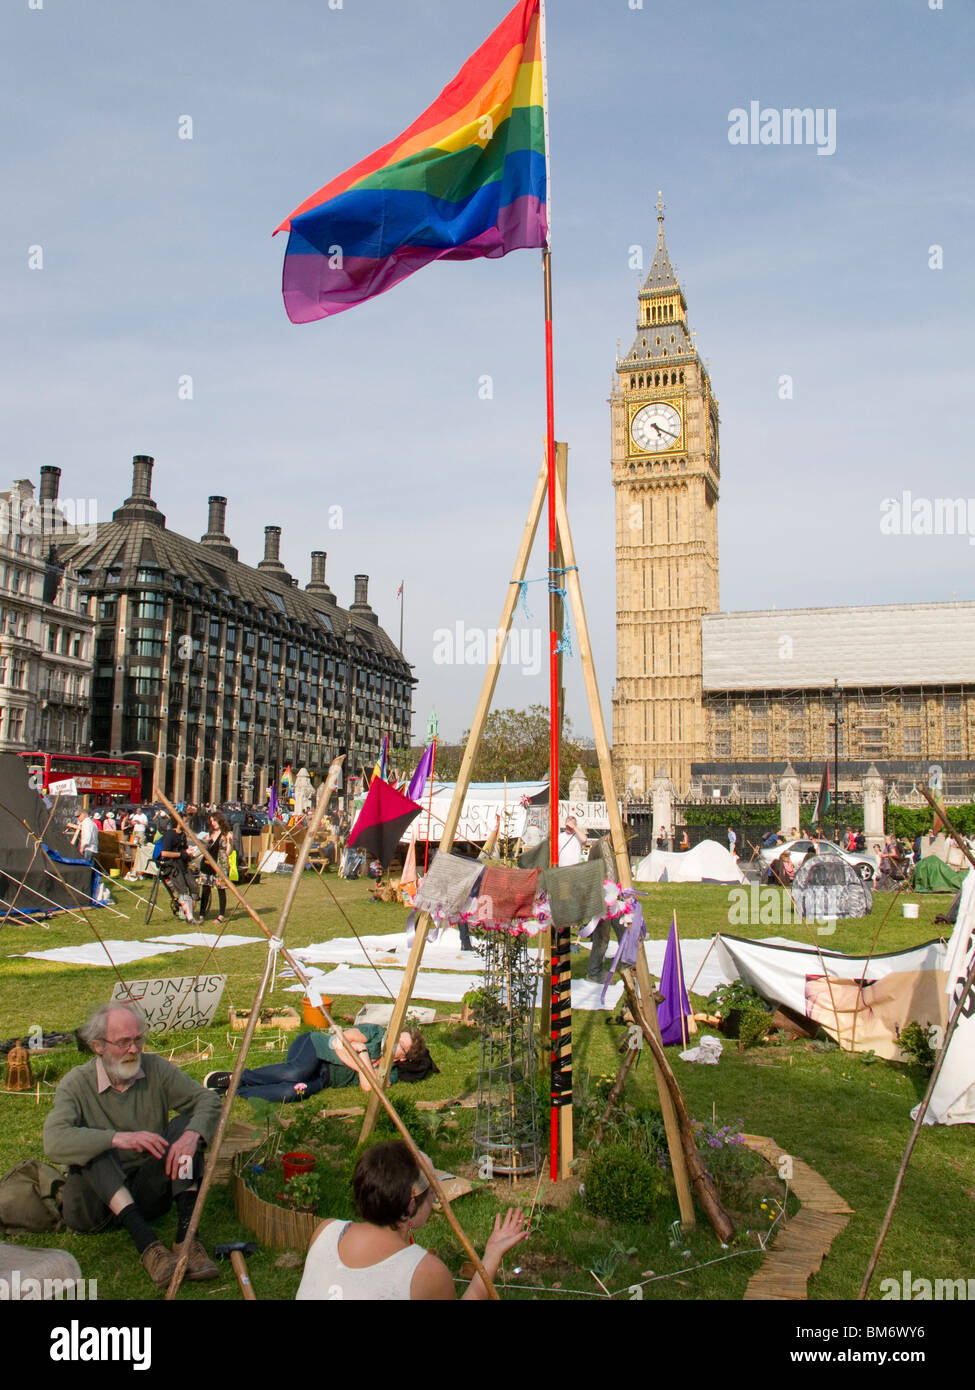 Peace camp of tents and banners set up by various activist groups in Parliament Square London May 2010 Stock Photo